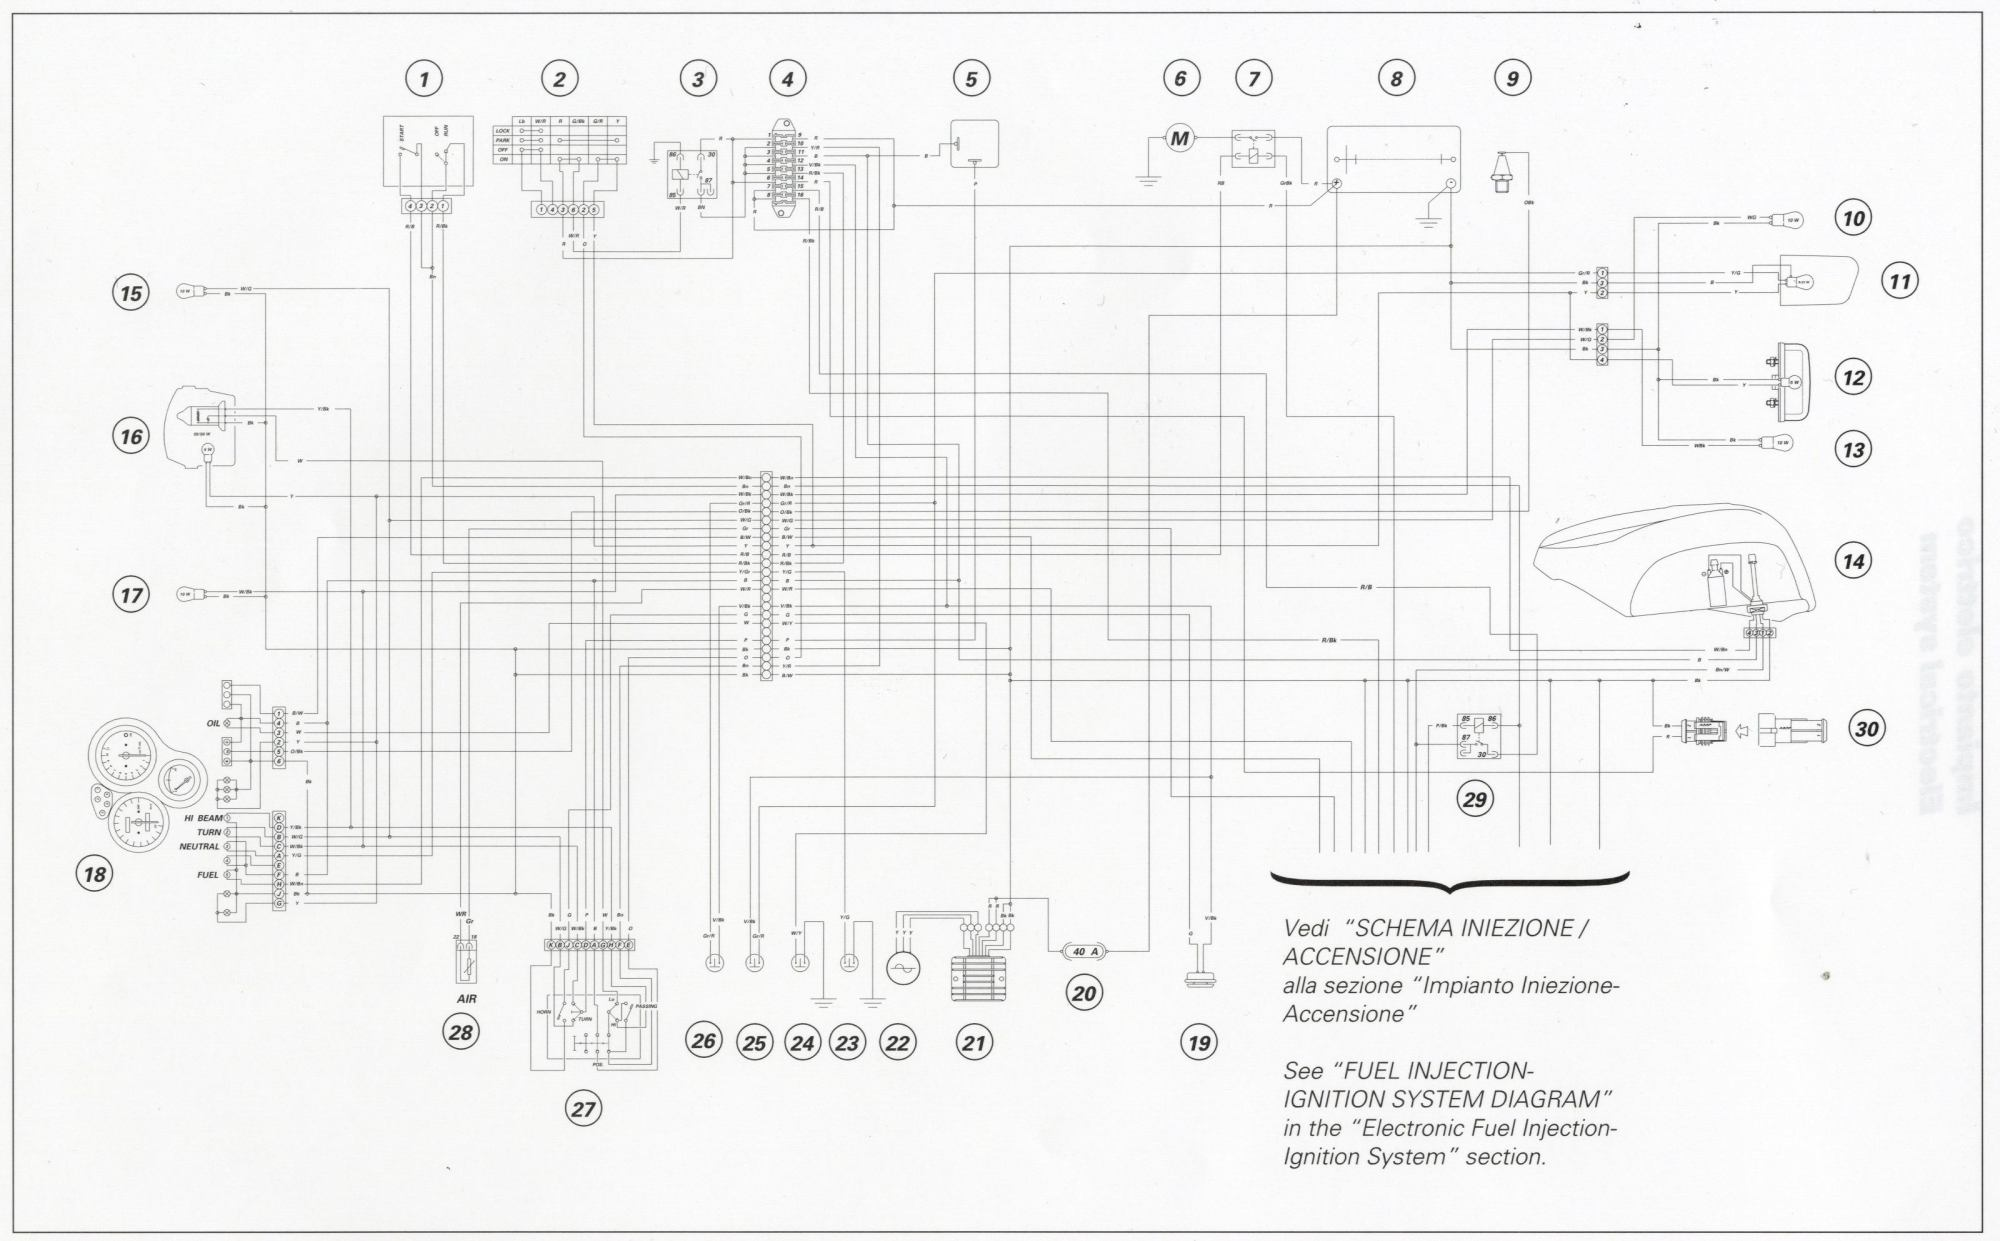 hight resolution of ducati regulator schematic wiring library rh 89 sekten kritik de magneto wiring diagram ducati 900ss